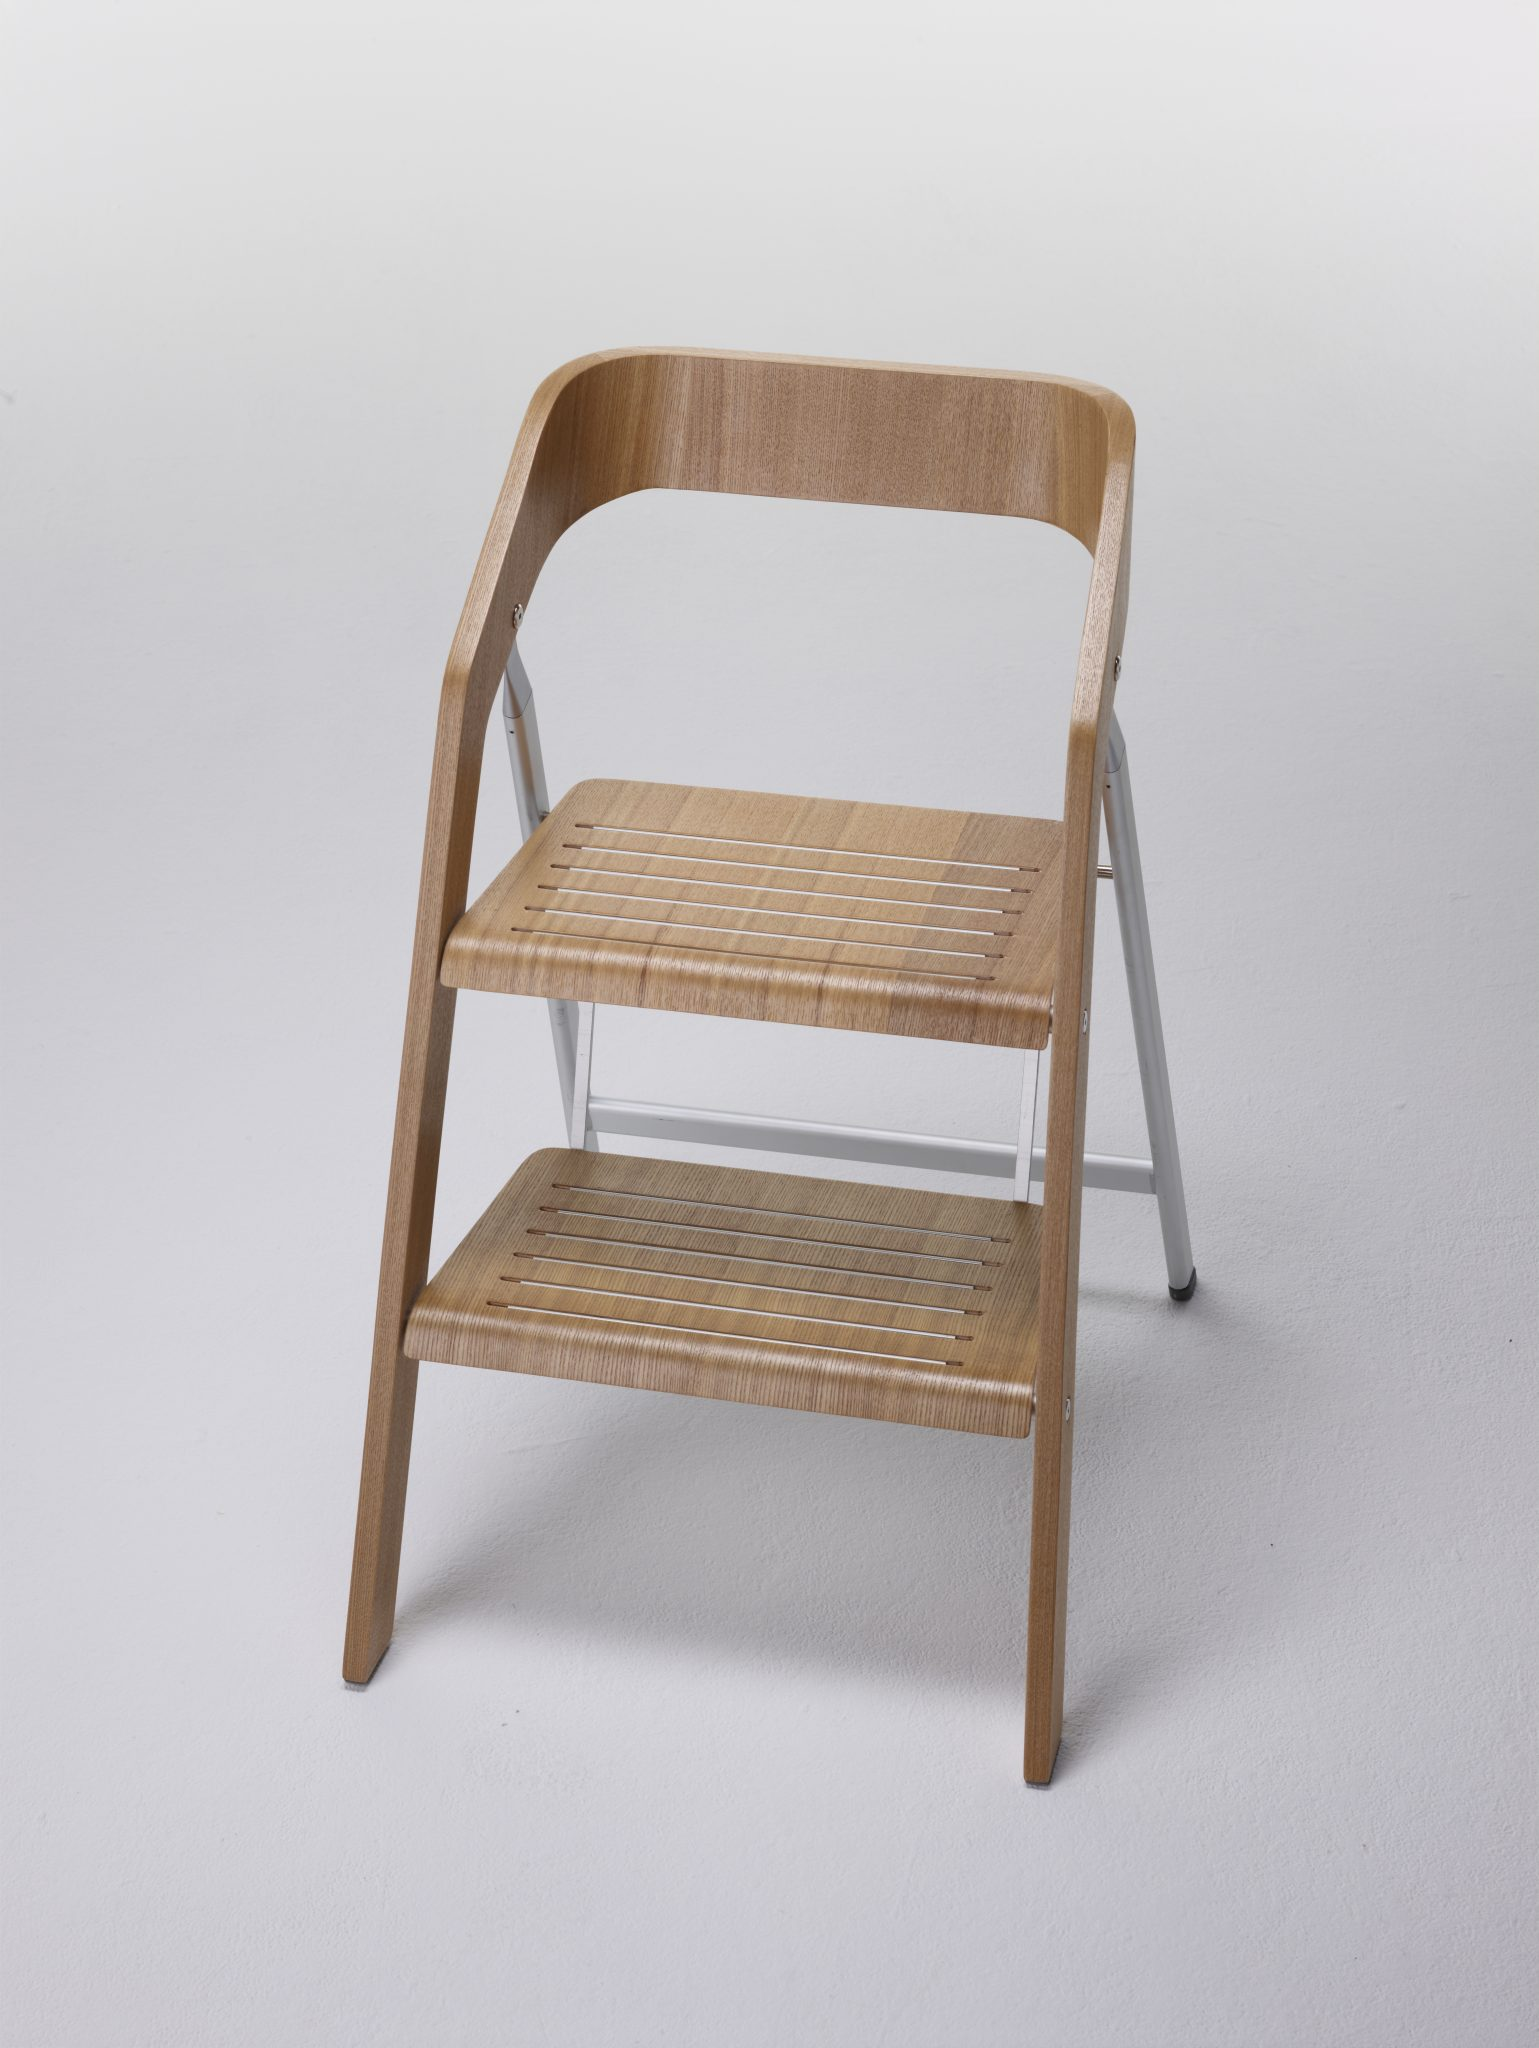 Magnificent Design Usit Design Caraccident5 Cool Chair Designs And Ideas Caraccident5Info